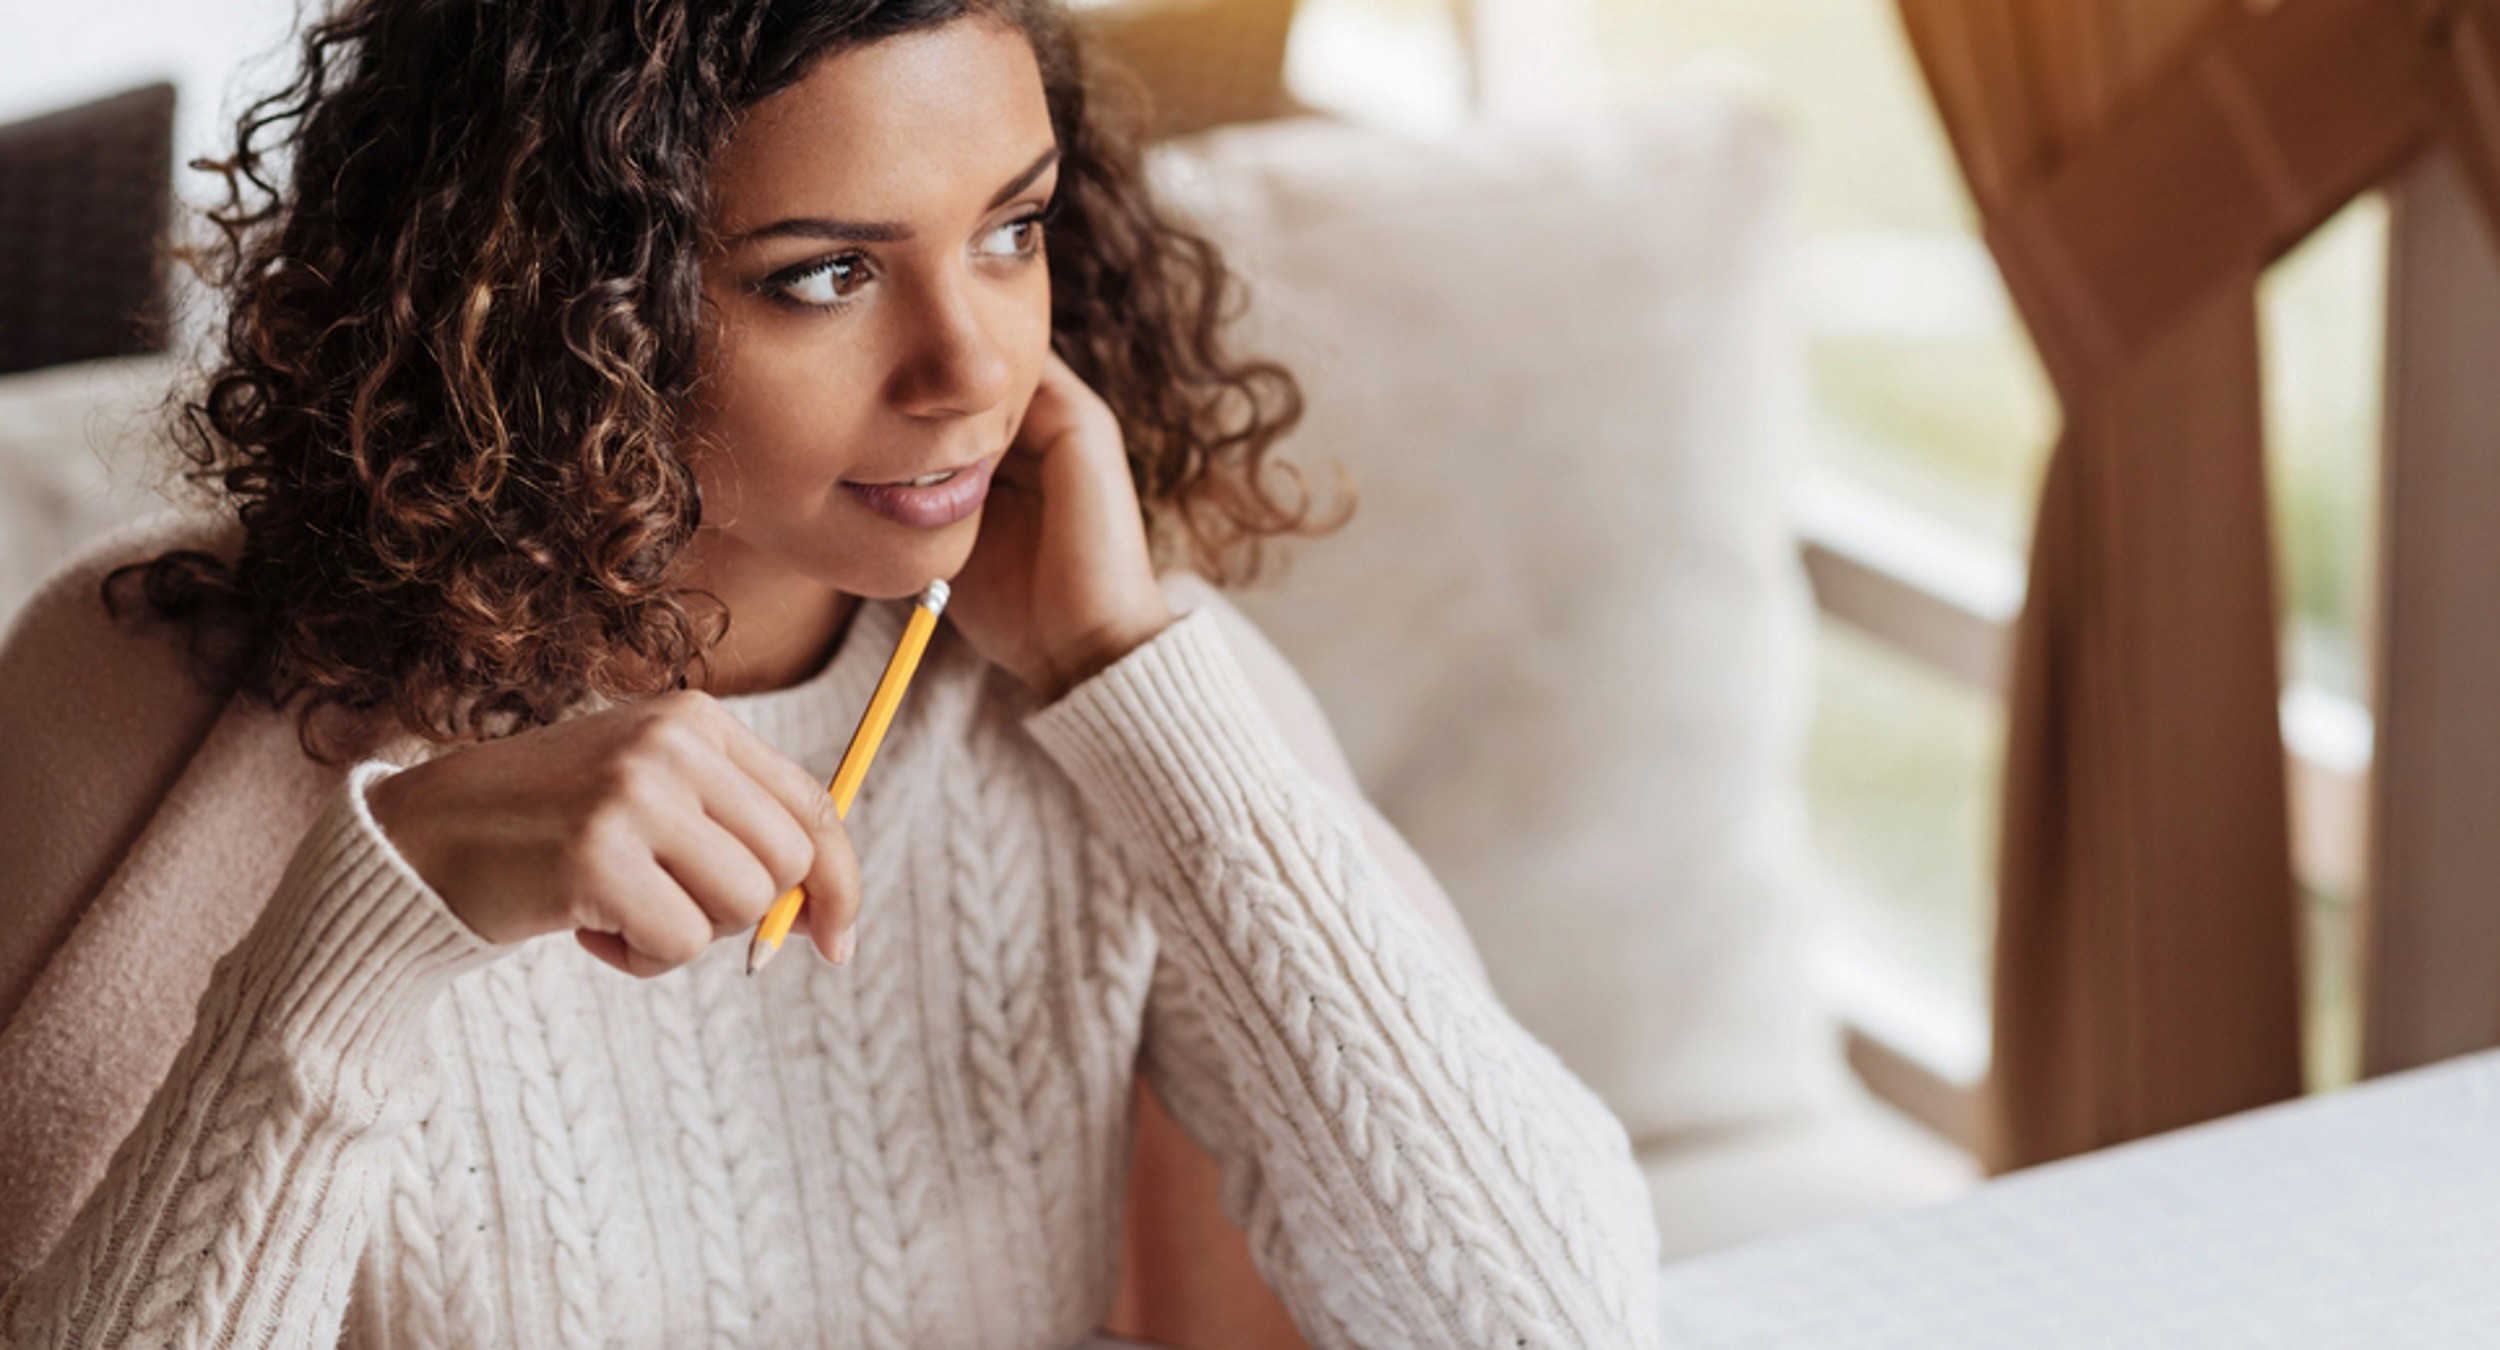 Photo of smiling female, holding pencil